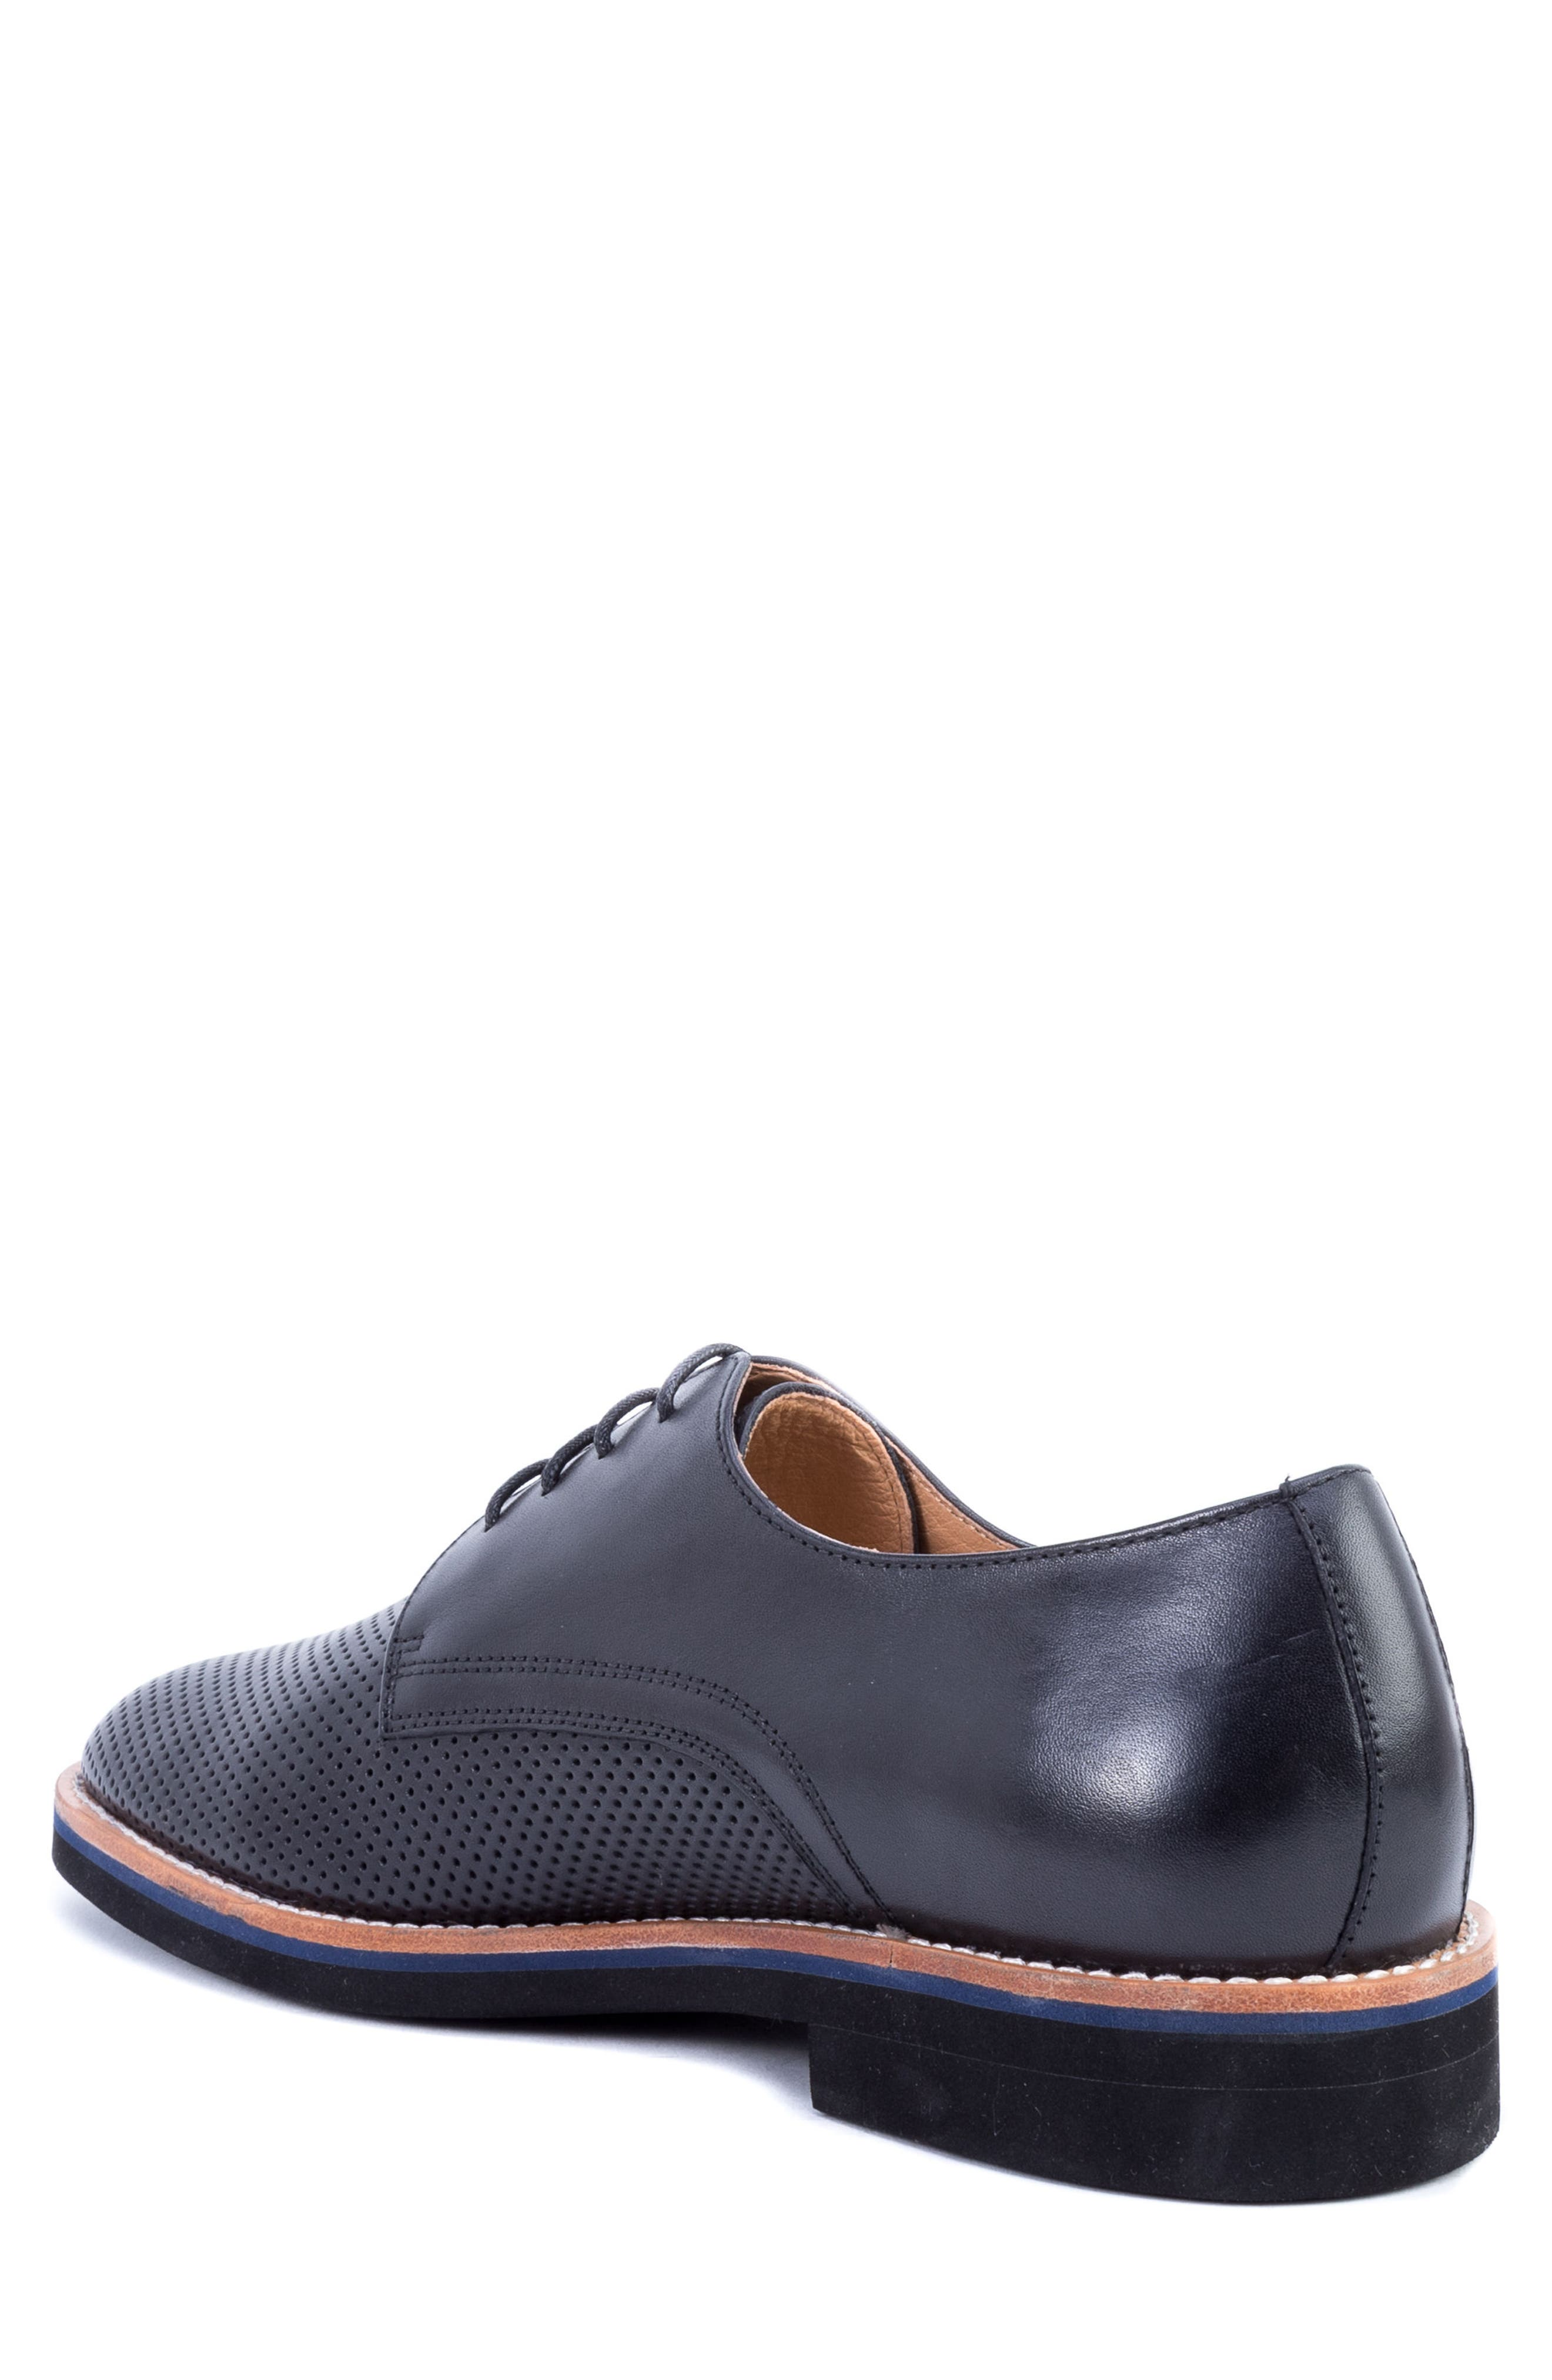 Hartung Perforated Plain Toe Derby,                             Alternate thumbnail 2, color,                             BLACK LEATHER